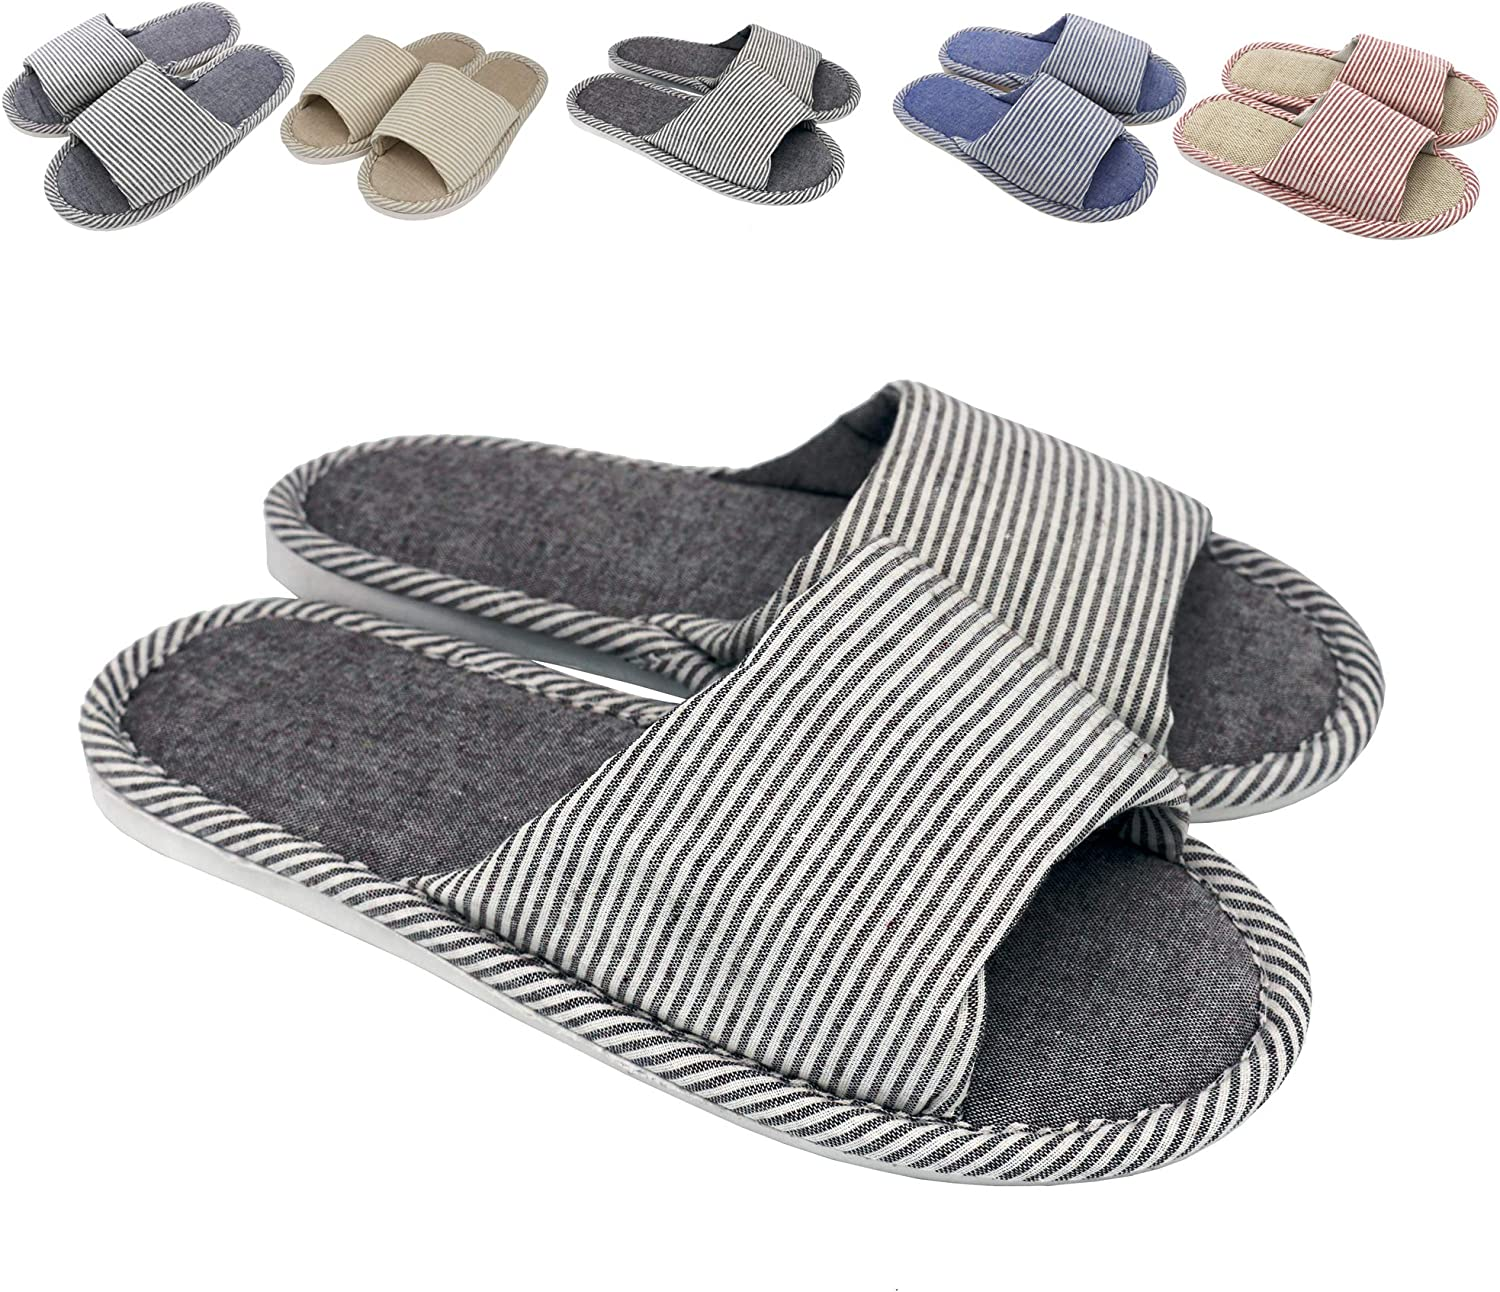 zisheng Women's and Men's Couple Slippers Cotton Flax Casual Memory Foam Open Toe Slippers Super Soft Light Comfortable and Breathable House Slippers Anti-Slip for Indoor and Outdoor